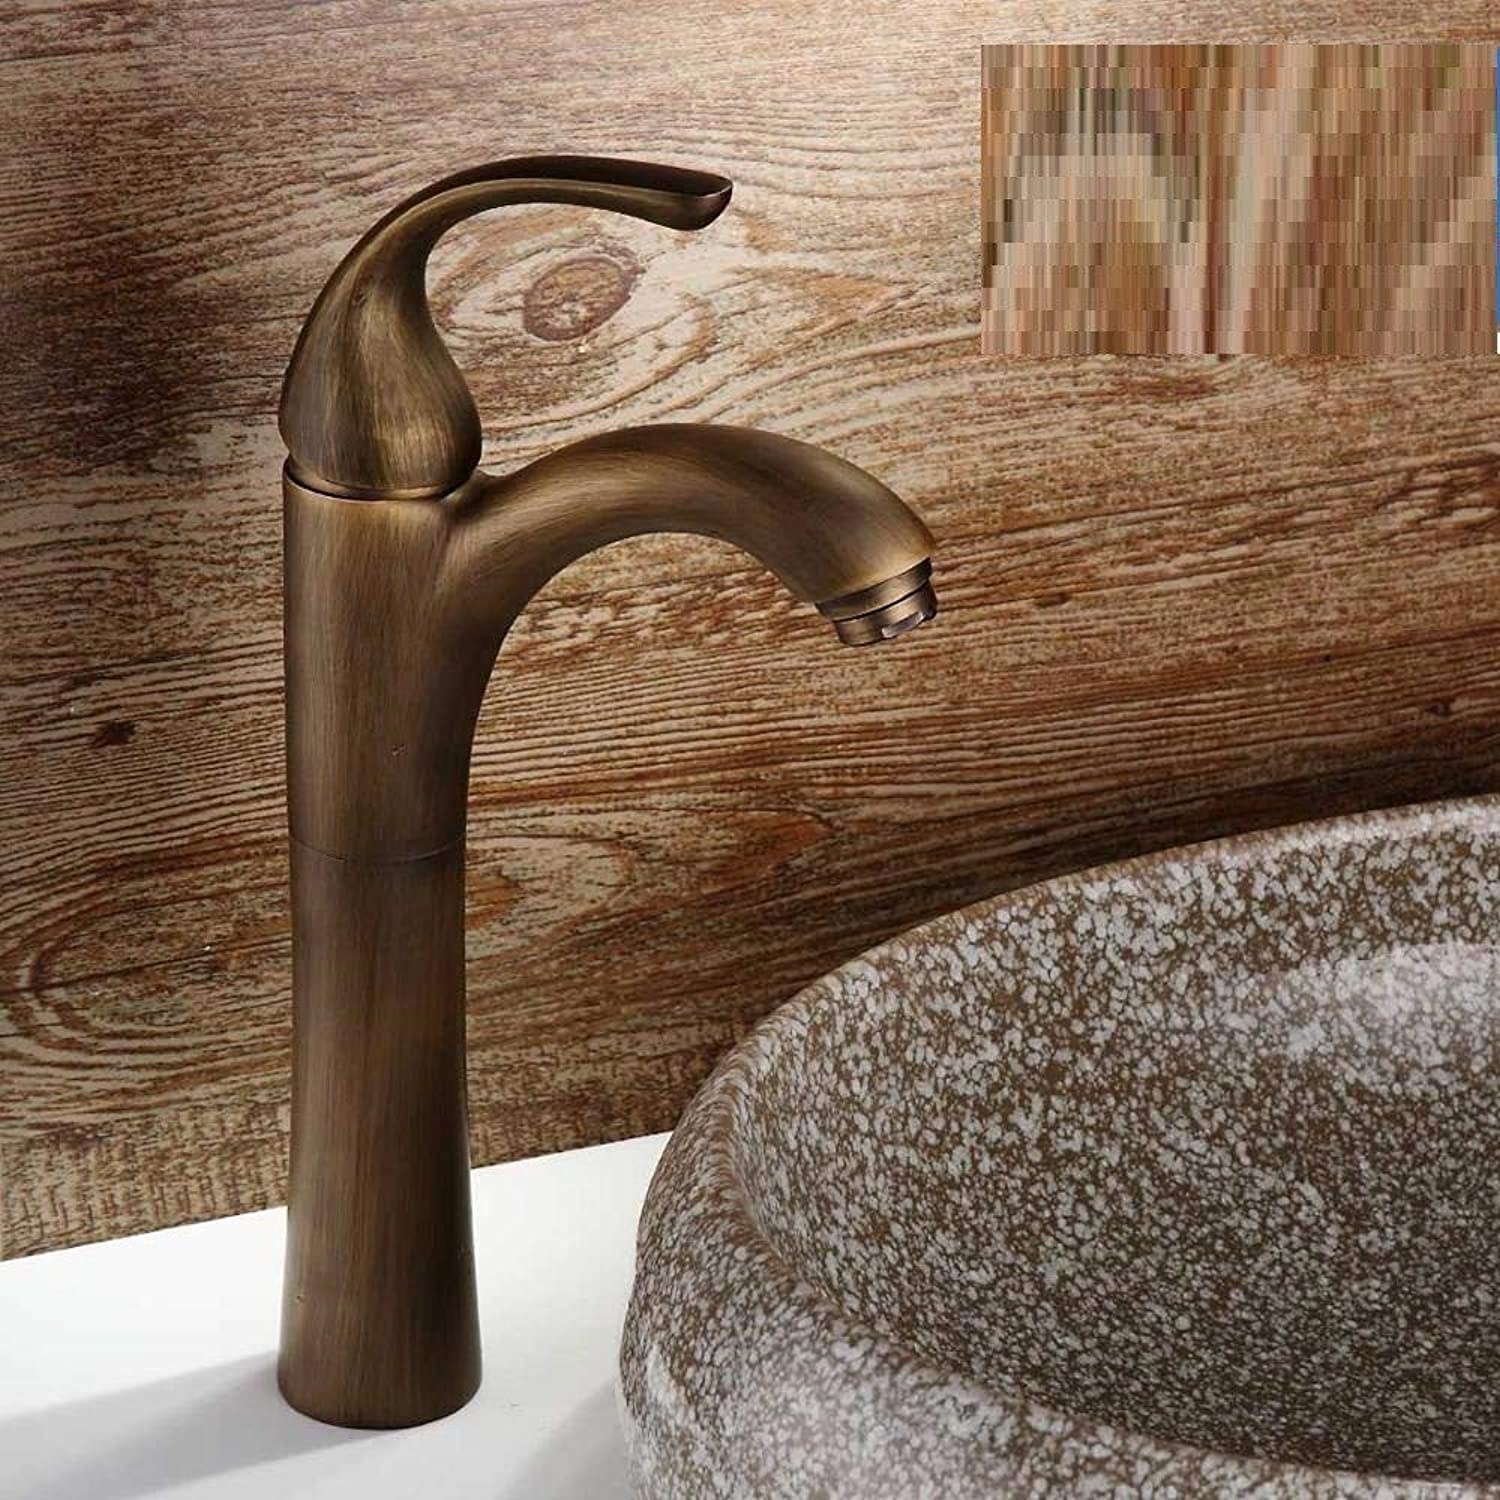 redOOY Taps Widespread Bathroom Faucet With Double Scroll Handles Finish Antique Brass Taps